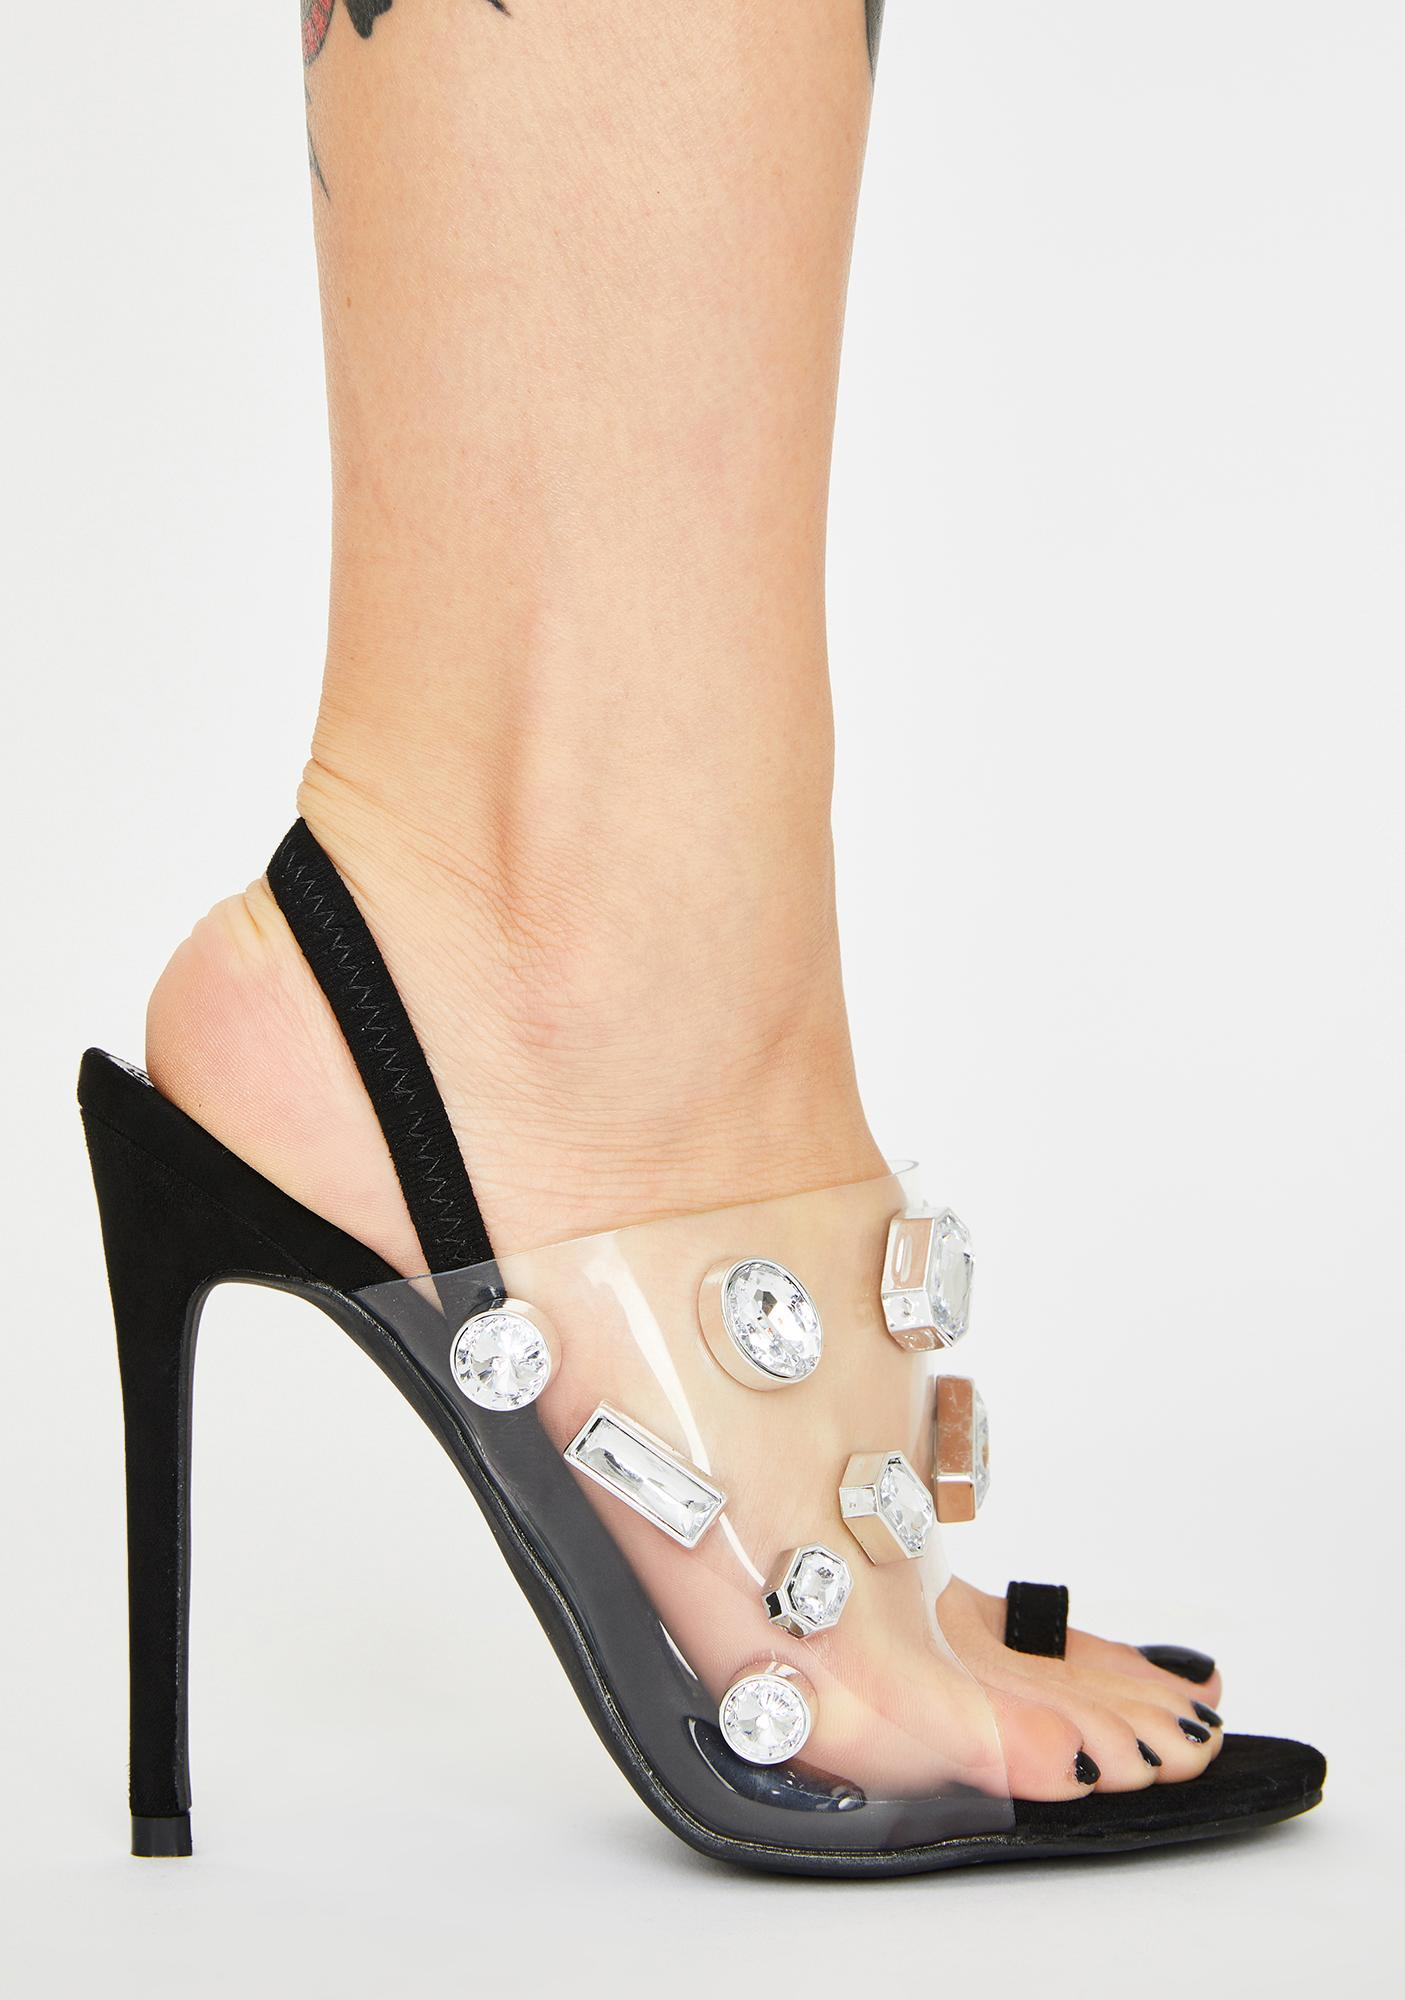 How Splendid Jeweled Heels